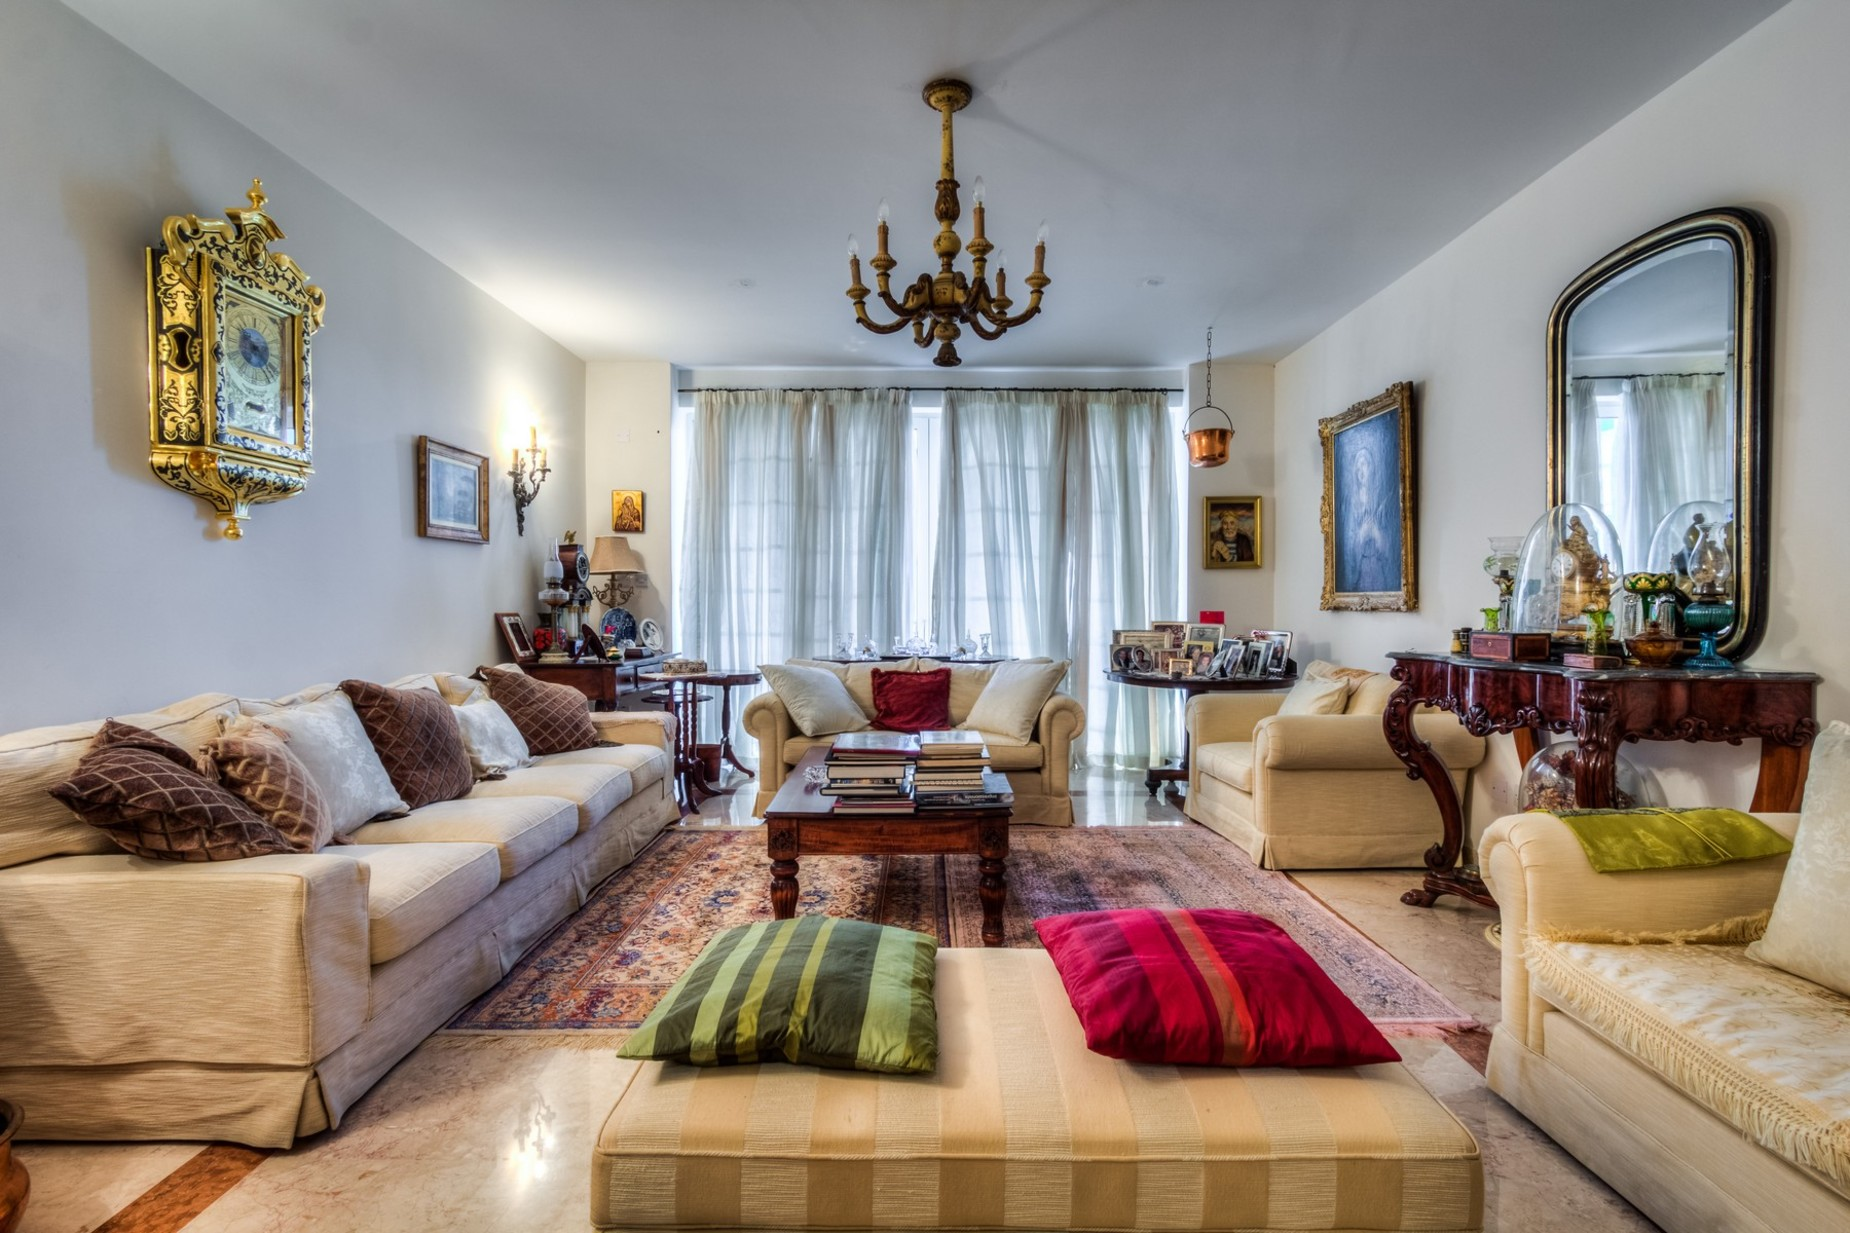 3 bed Apartment For Sale in Rabat, Rabat - thumb 7